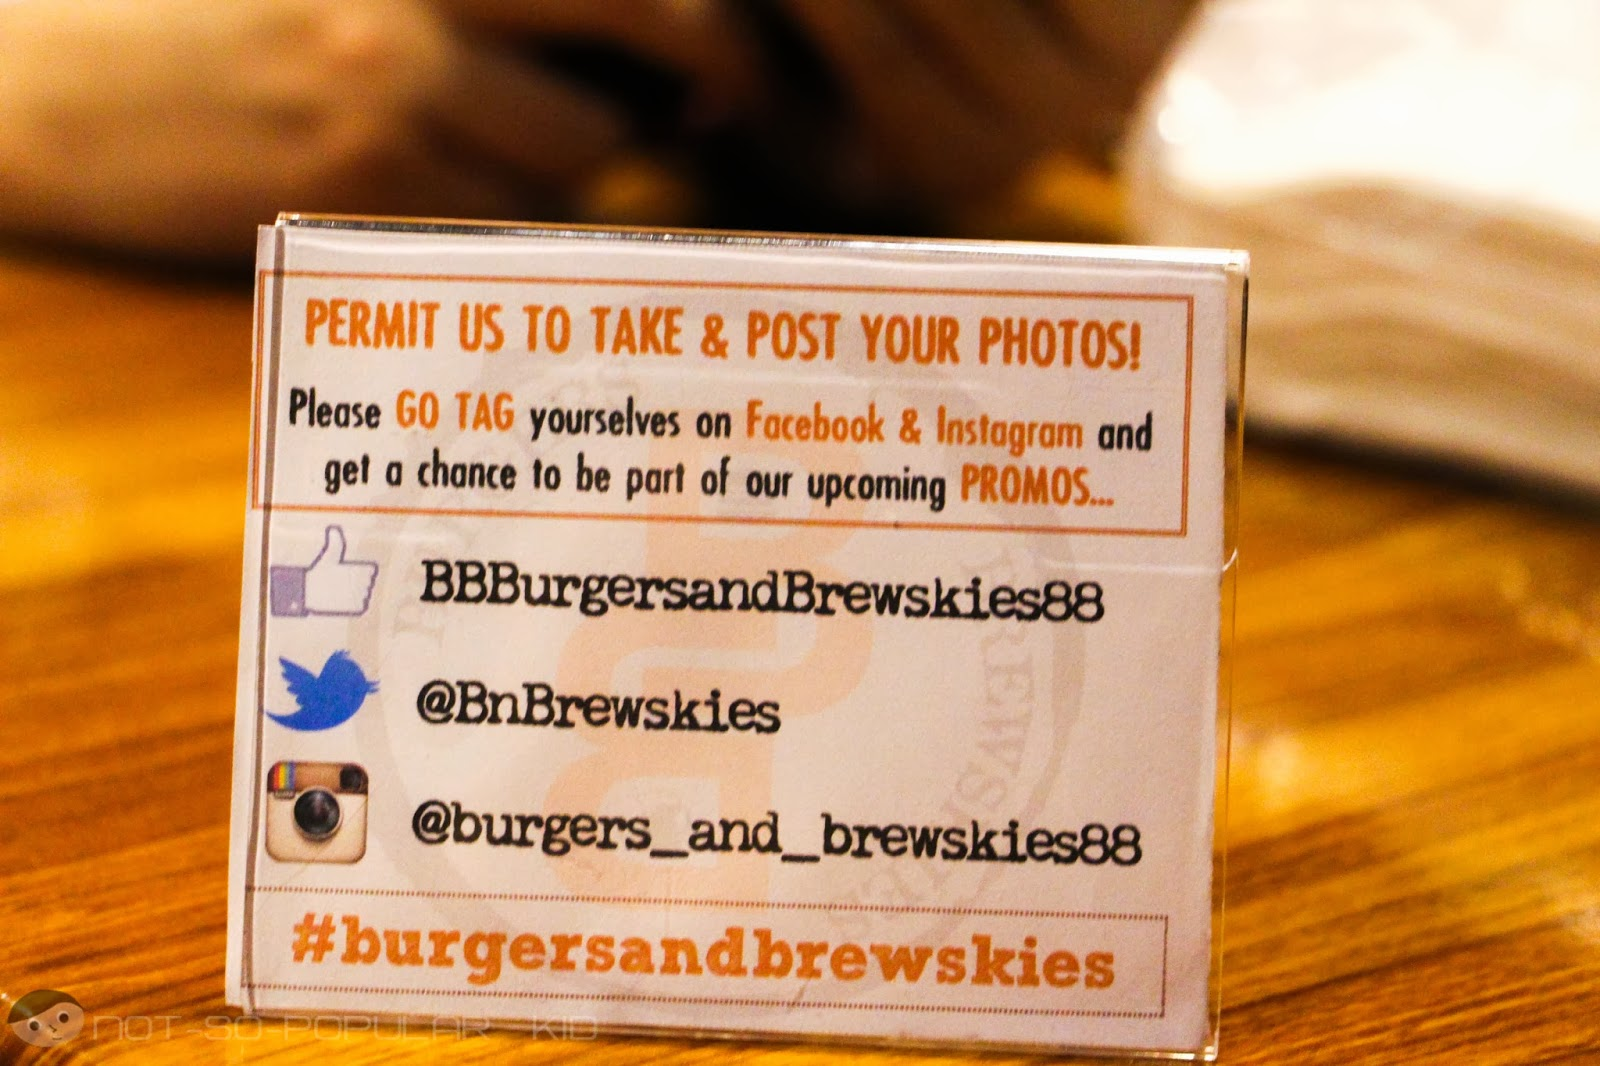 Burgers and Brewskies Social Media Accounts